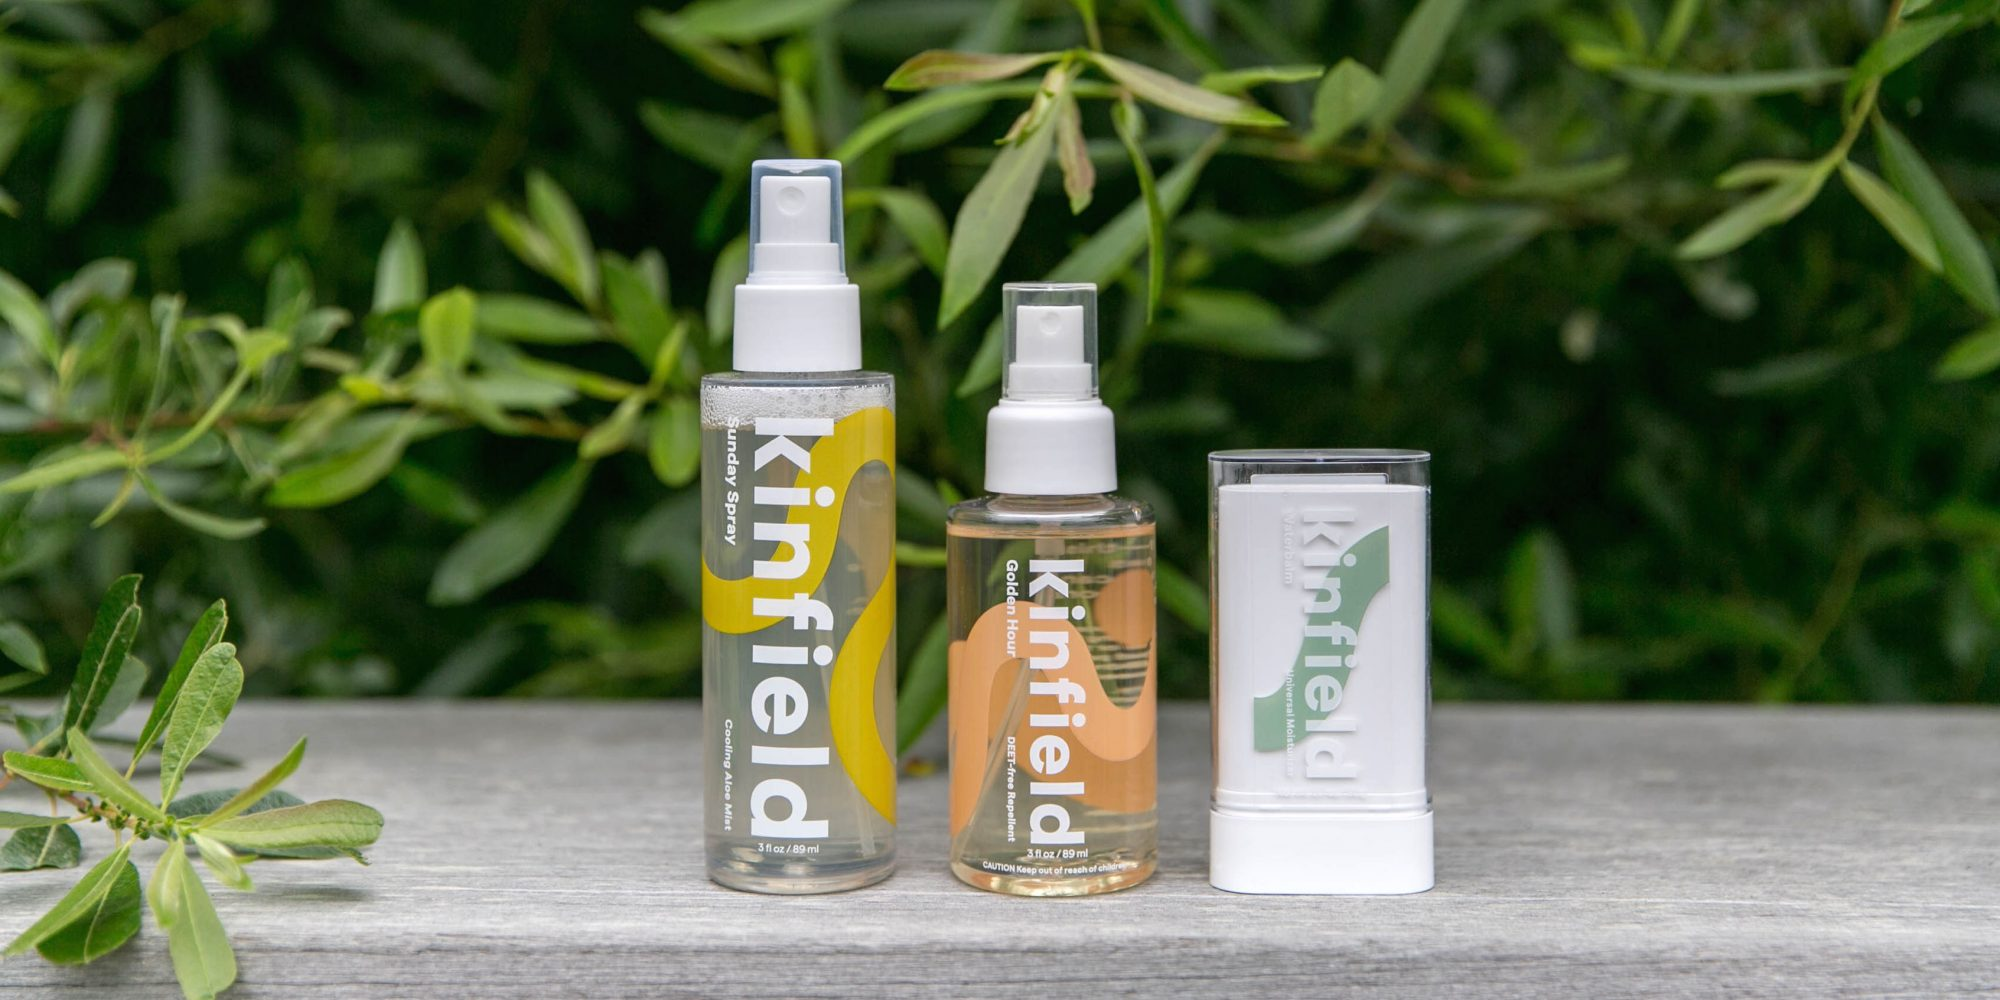 Venture-Backed Brand Kinfield Launches With Personal Care Products Designed To Elevate Outdoor Excursions